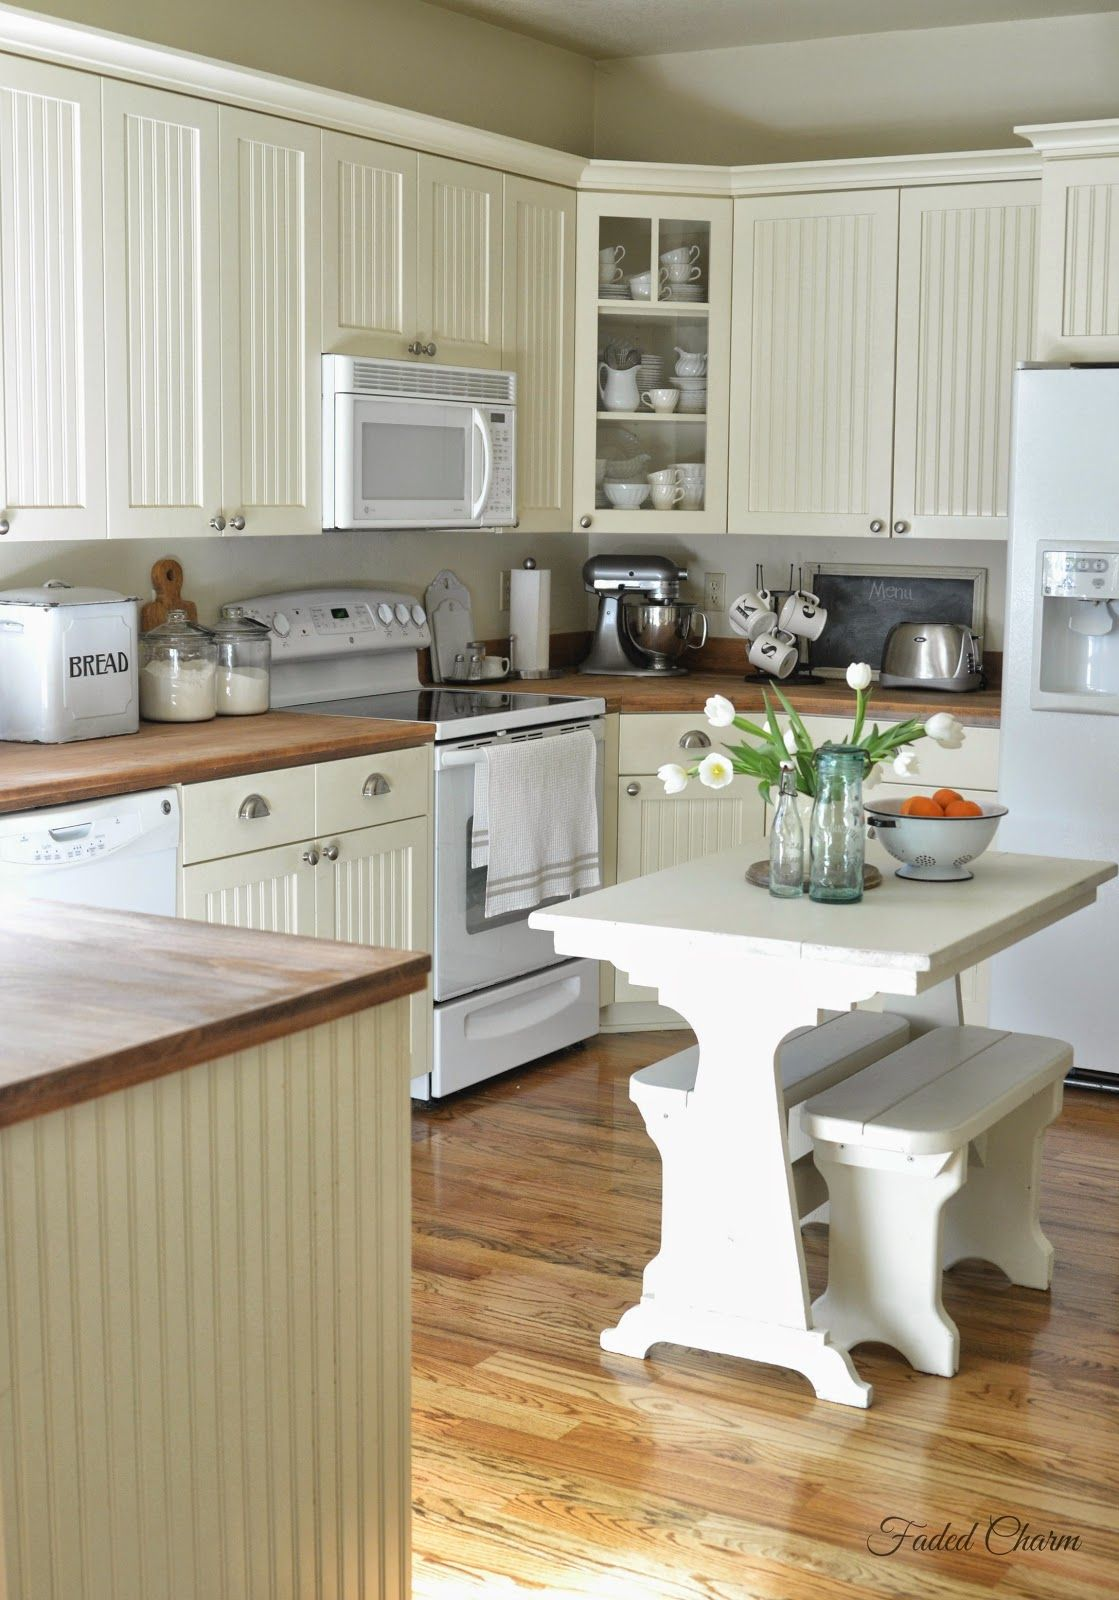 Faded Charm Farmhouse Style Love The Beadboard Cabinets Butcherblock Counter Tops Hardwood Floors And That L Kitchen Remodel New Kitchen Cabinets Kitchen